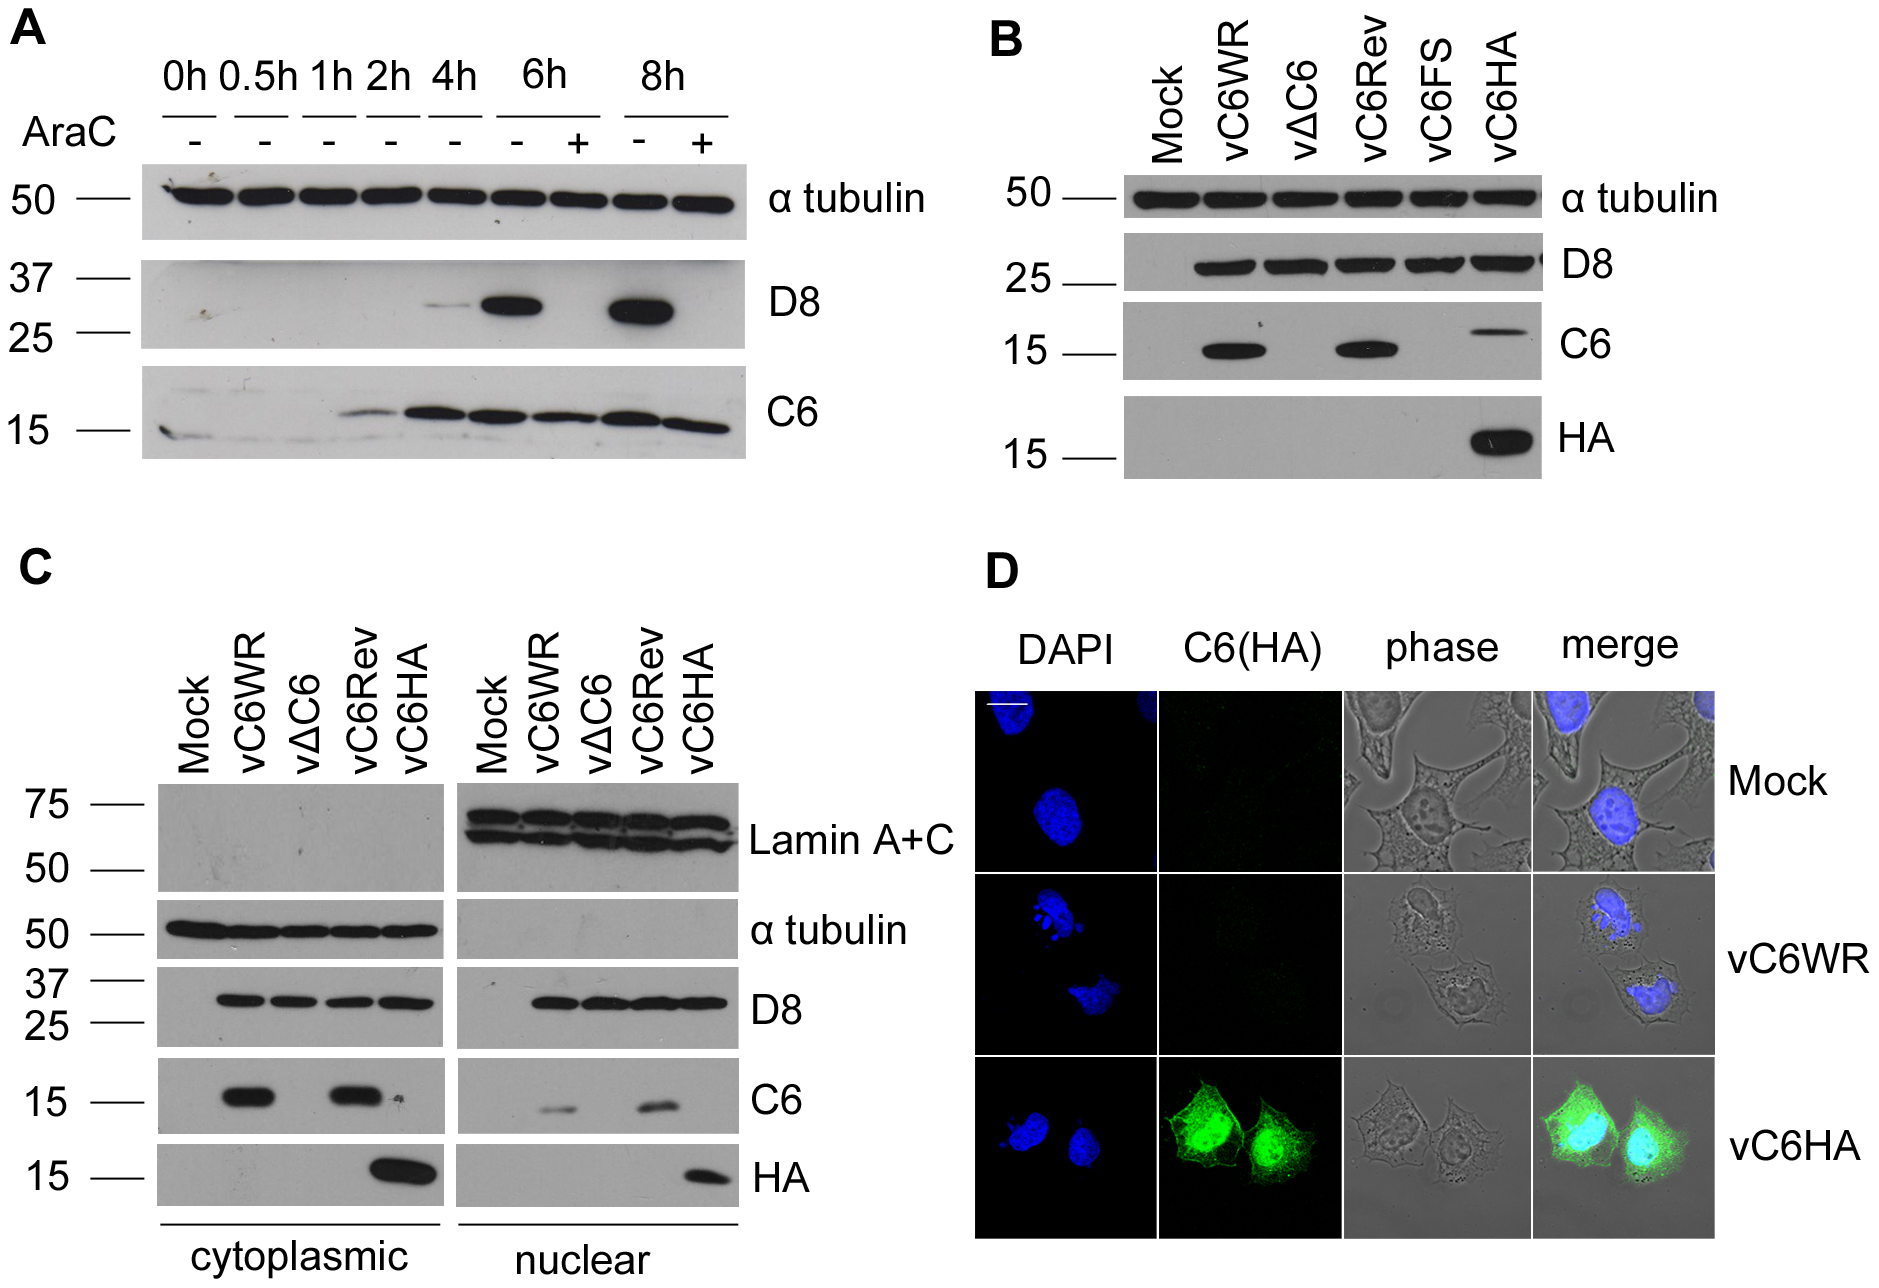 C6 is expressed early during infection and is present in both the cytoplasm and nucleus.